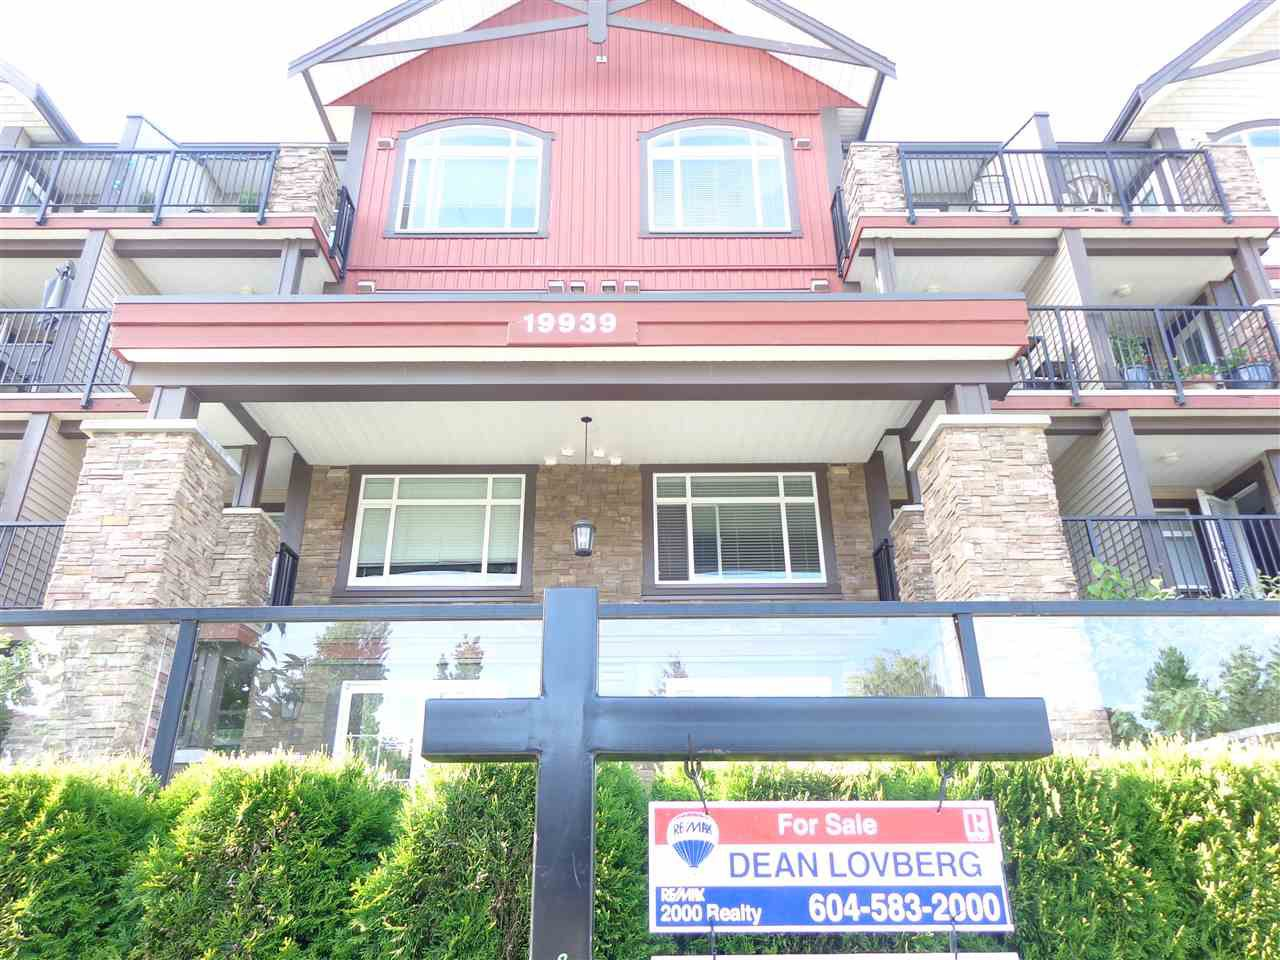 """Main Photo: 307 19939 55A Avenue in Langley: Langley City Condo for sale in """"MADISON CROSSING"""" : MLS®# R2173629"""